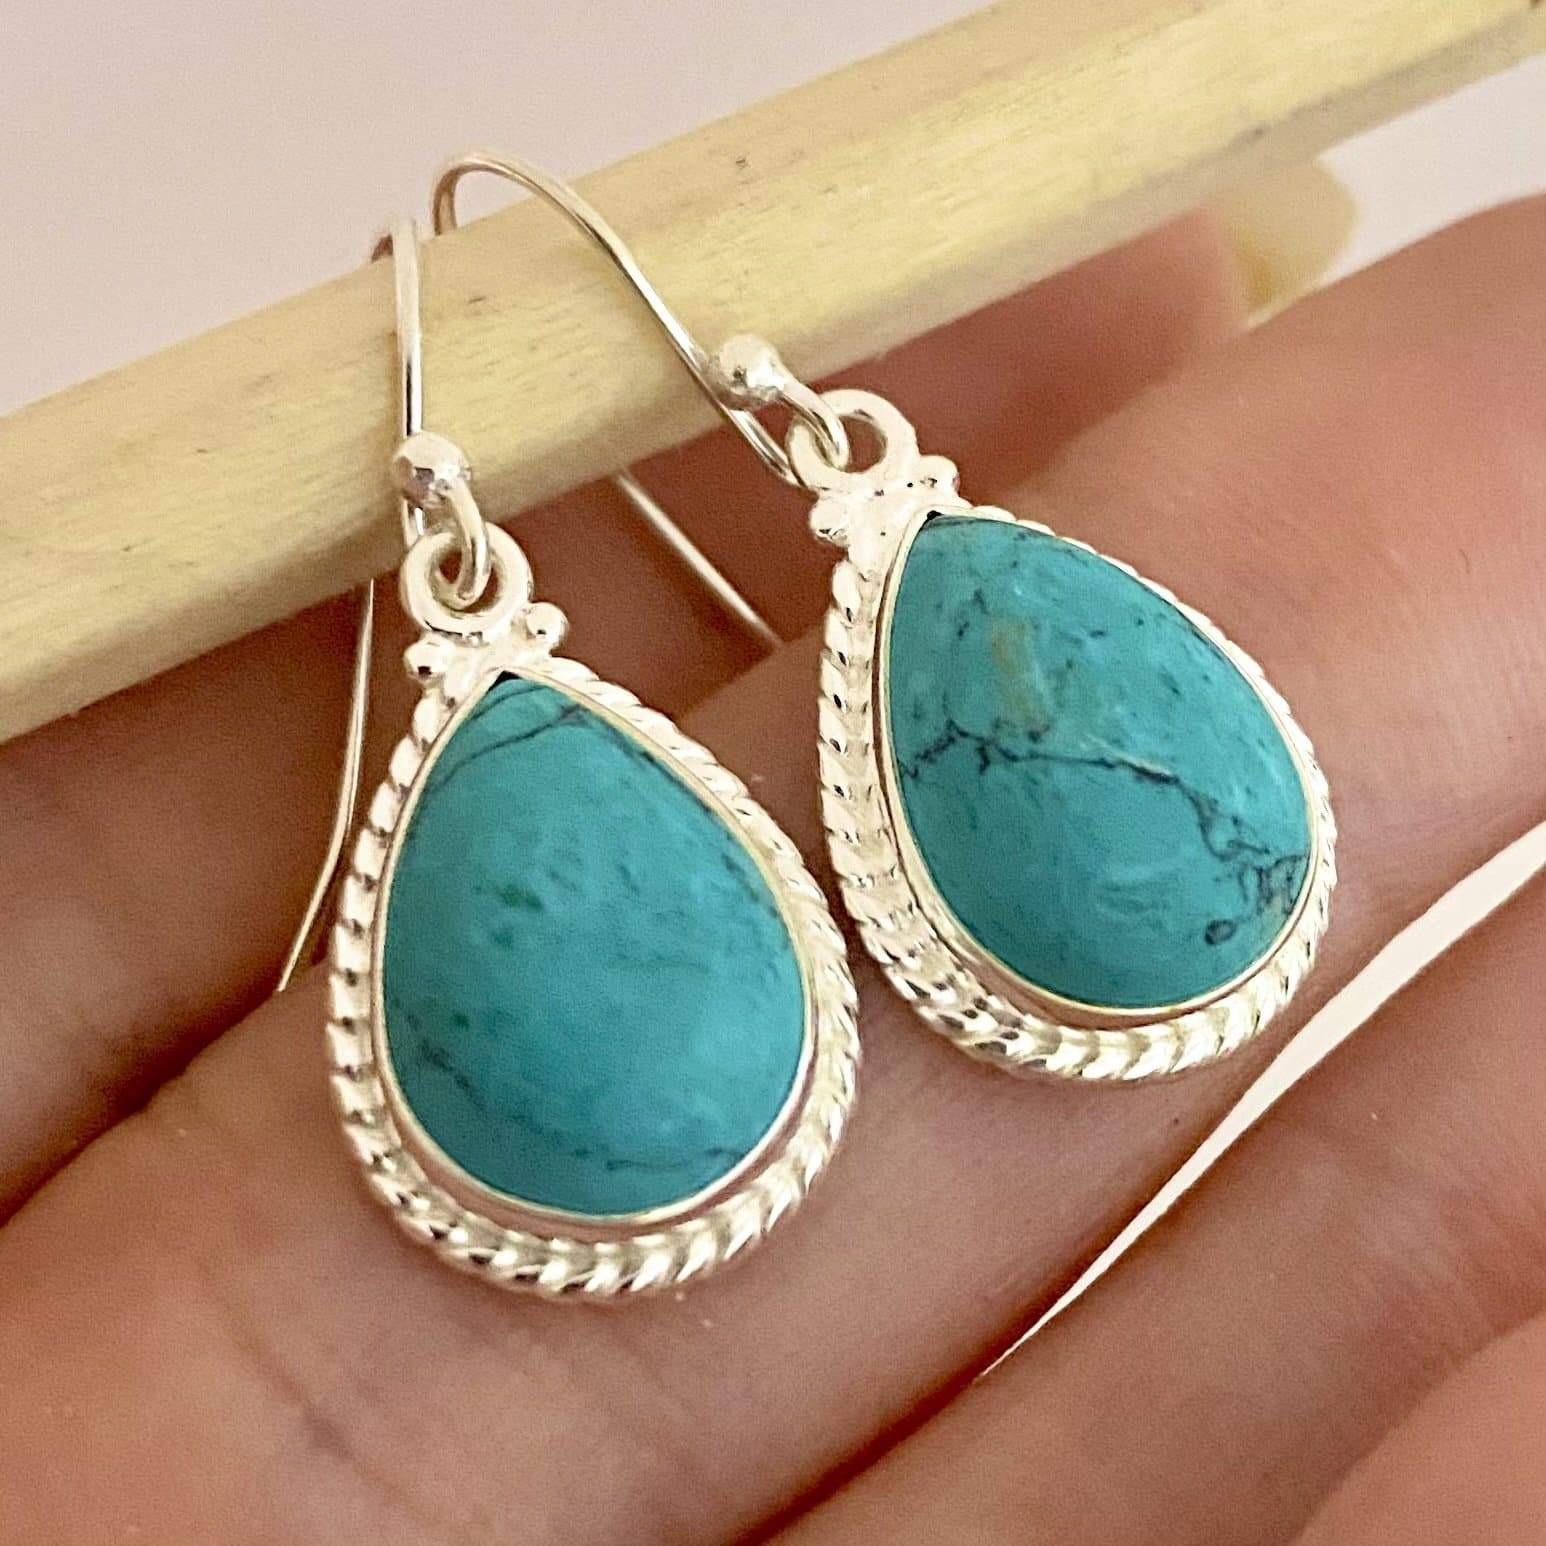 Laihas Handcrafted Twisted Raindrop Turquoise Earrings - Laihas Bohemian Dreaming